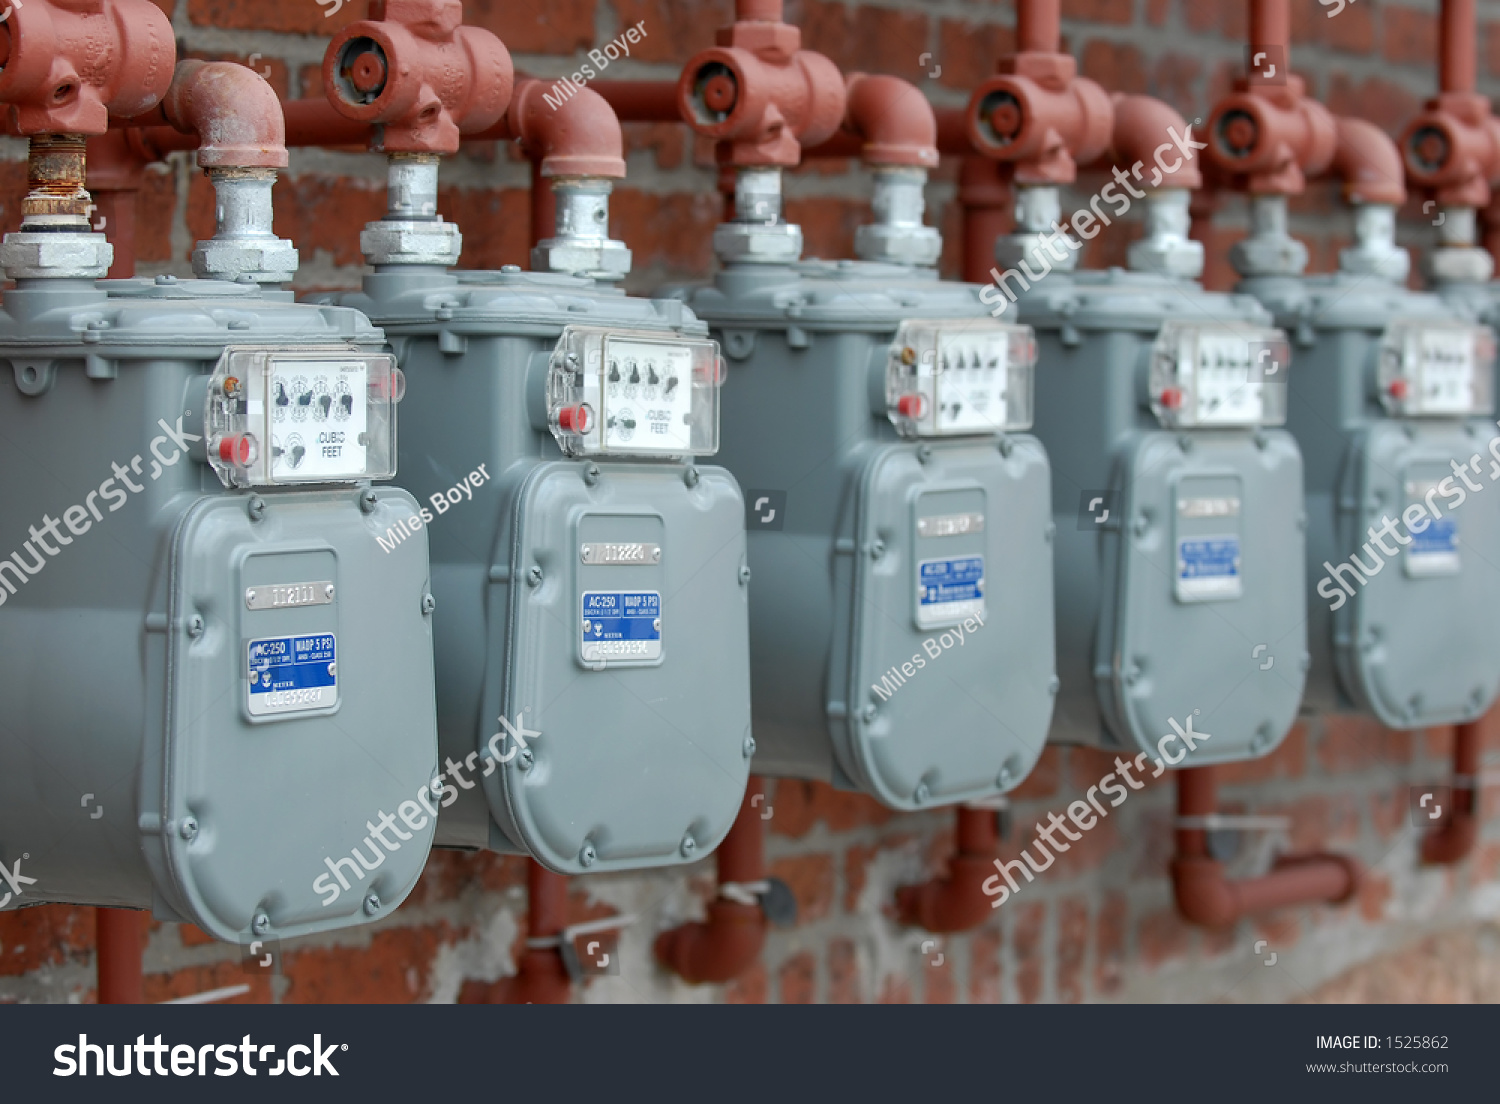 Home Gas Meter And Meter In Water : Row natural gas meters apartment complex stock photo